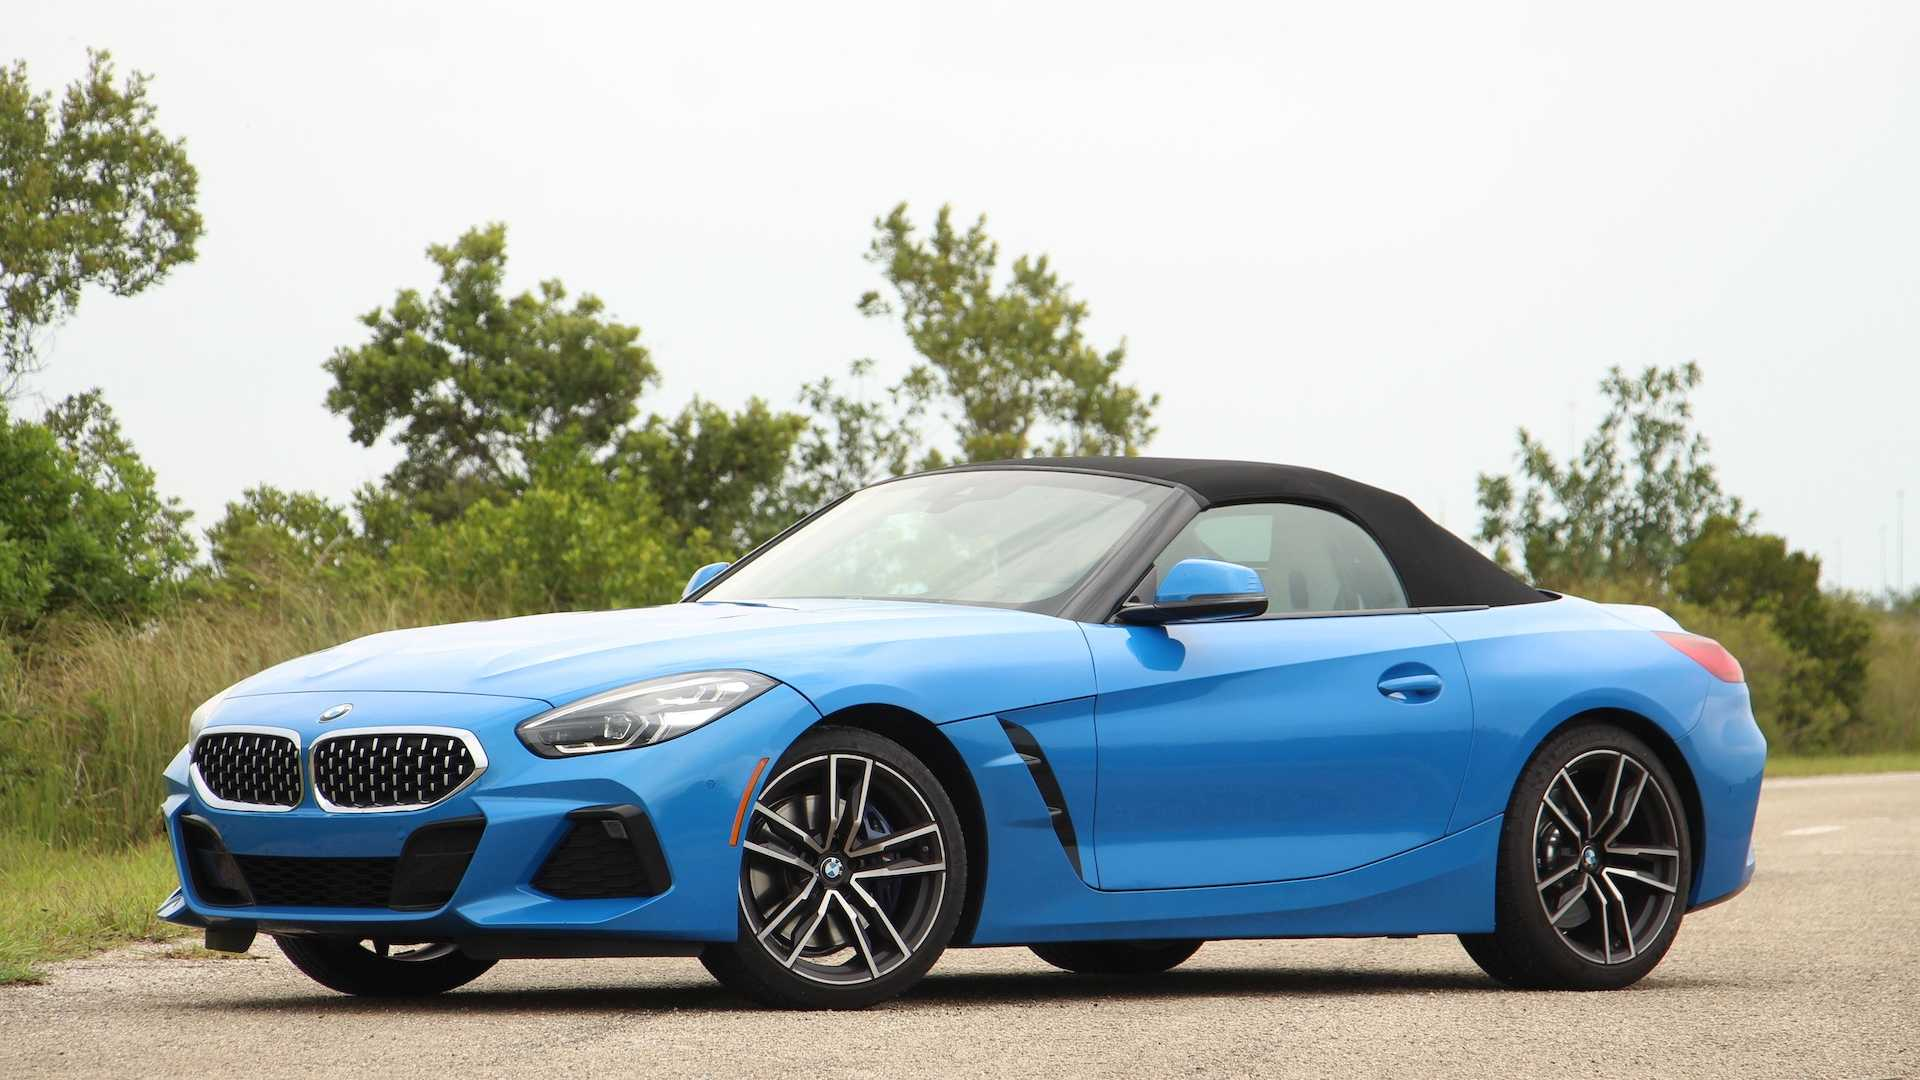 Bmw Z4 Cheaper To Lease Than Toyota Supra Despite Higher